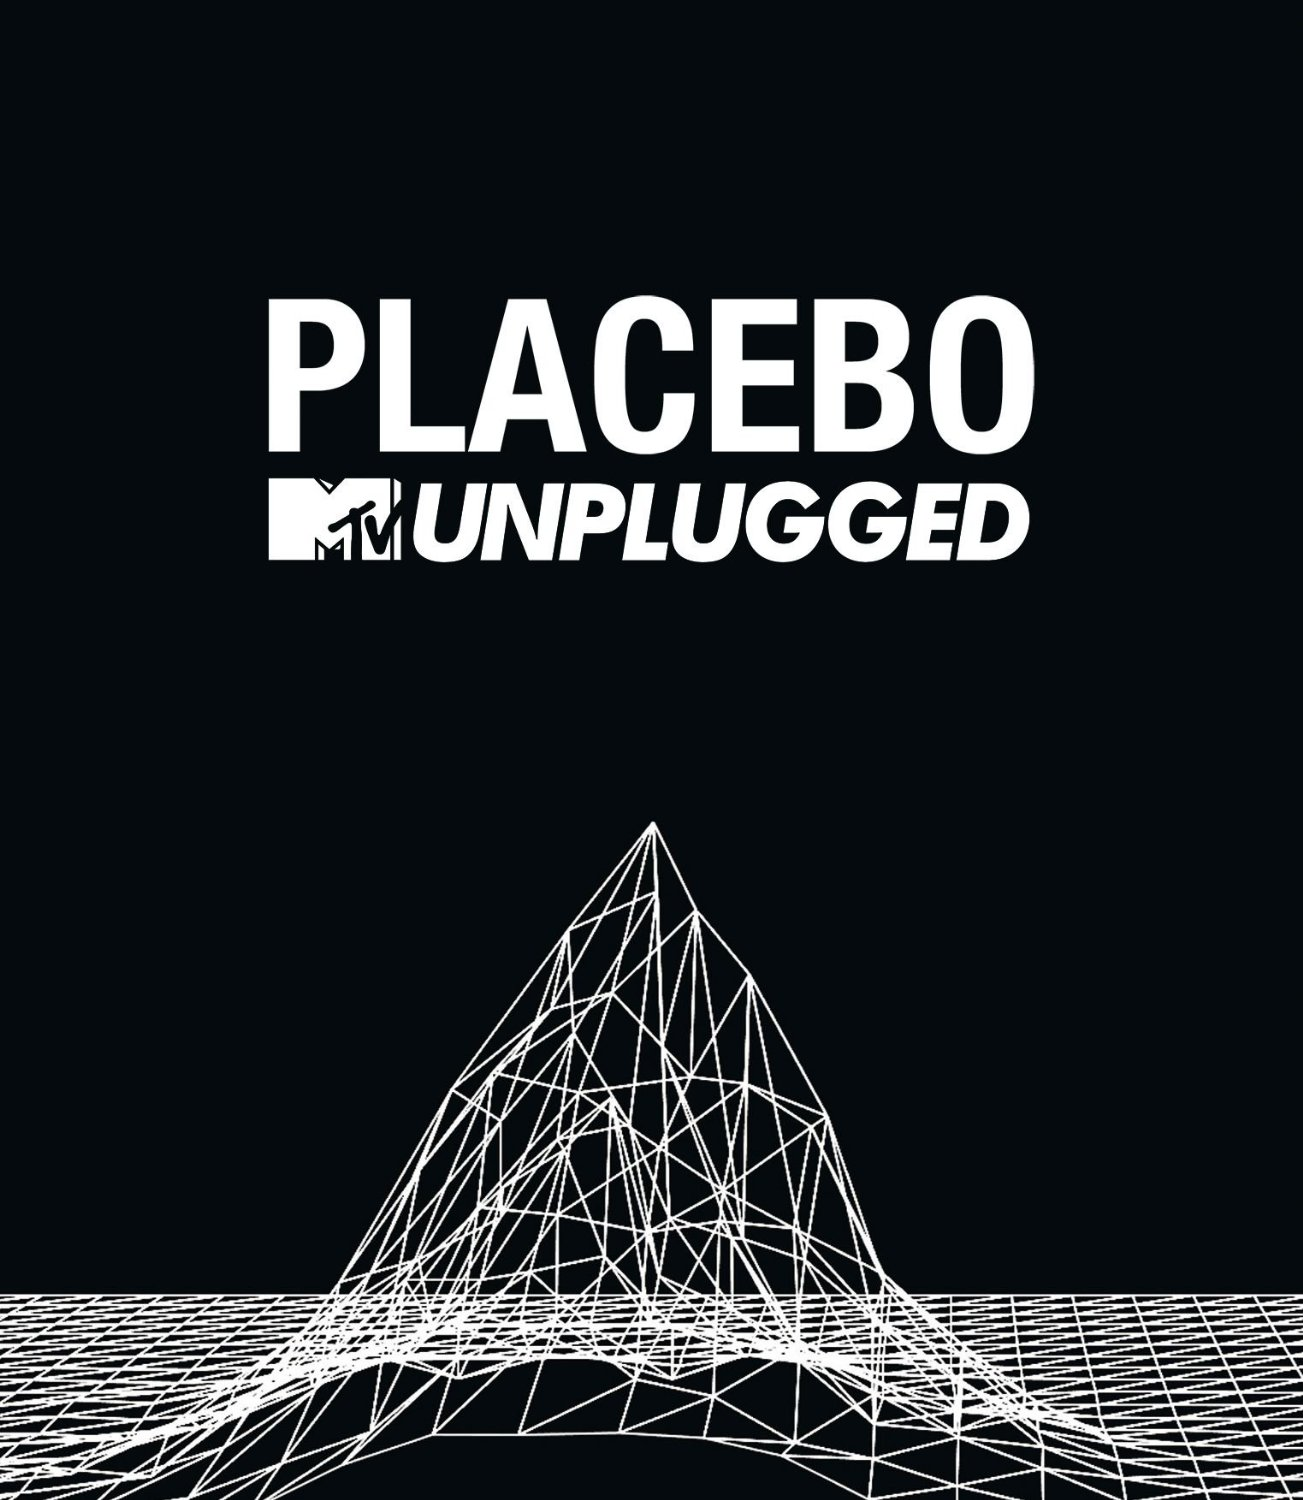 Placebo : MTV Unplugged